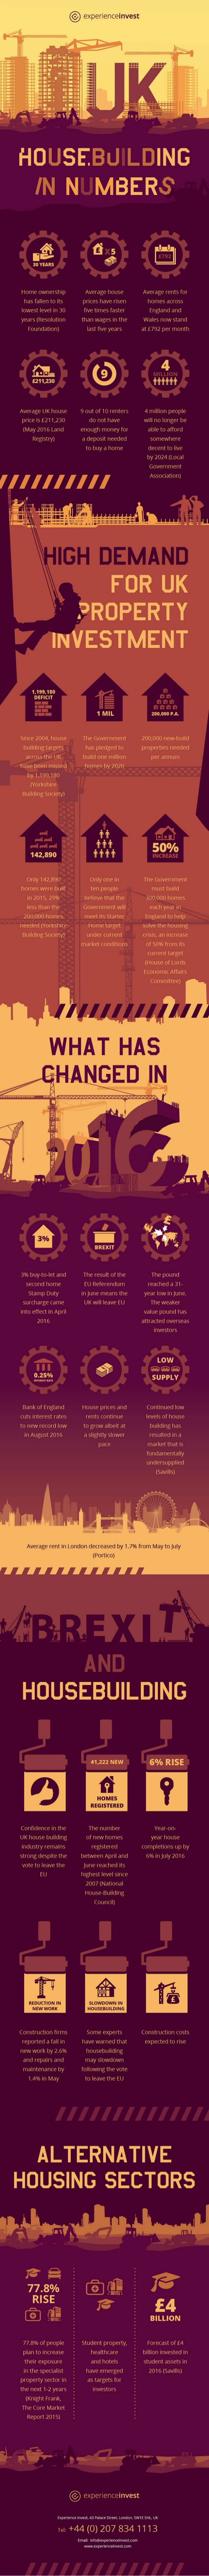 Infographic UK Housebuilding in Numbers